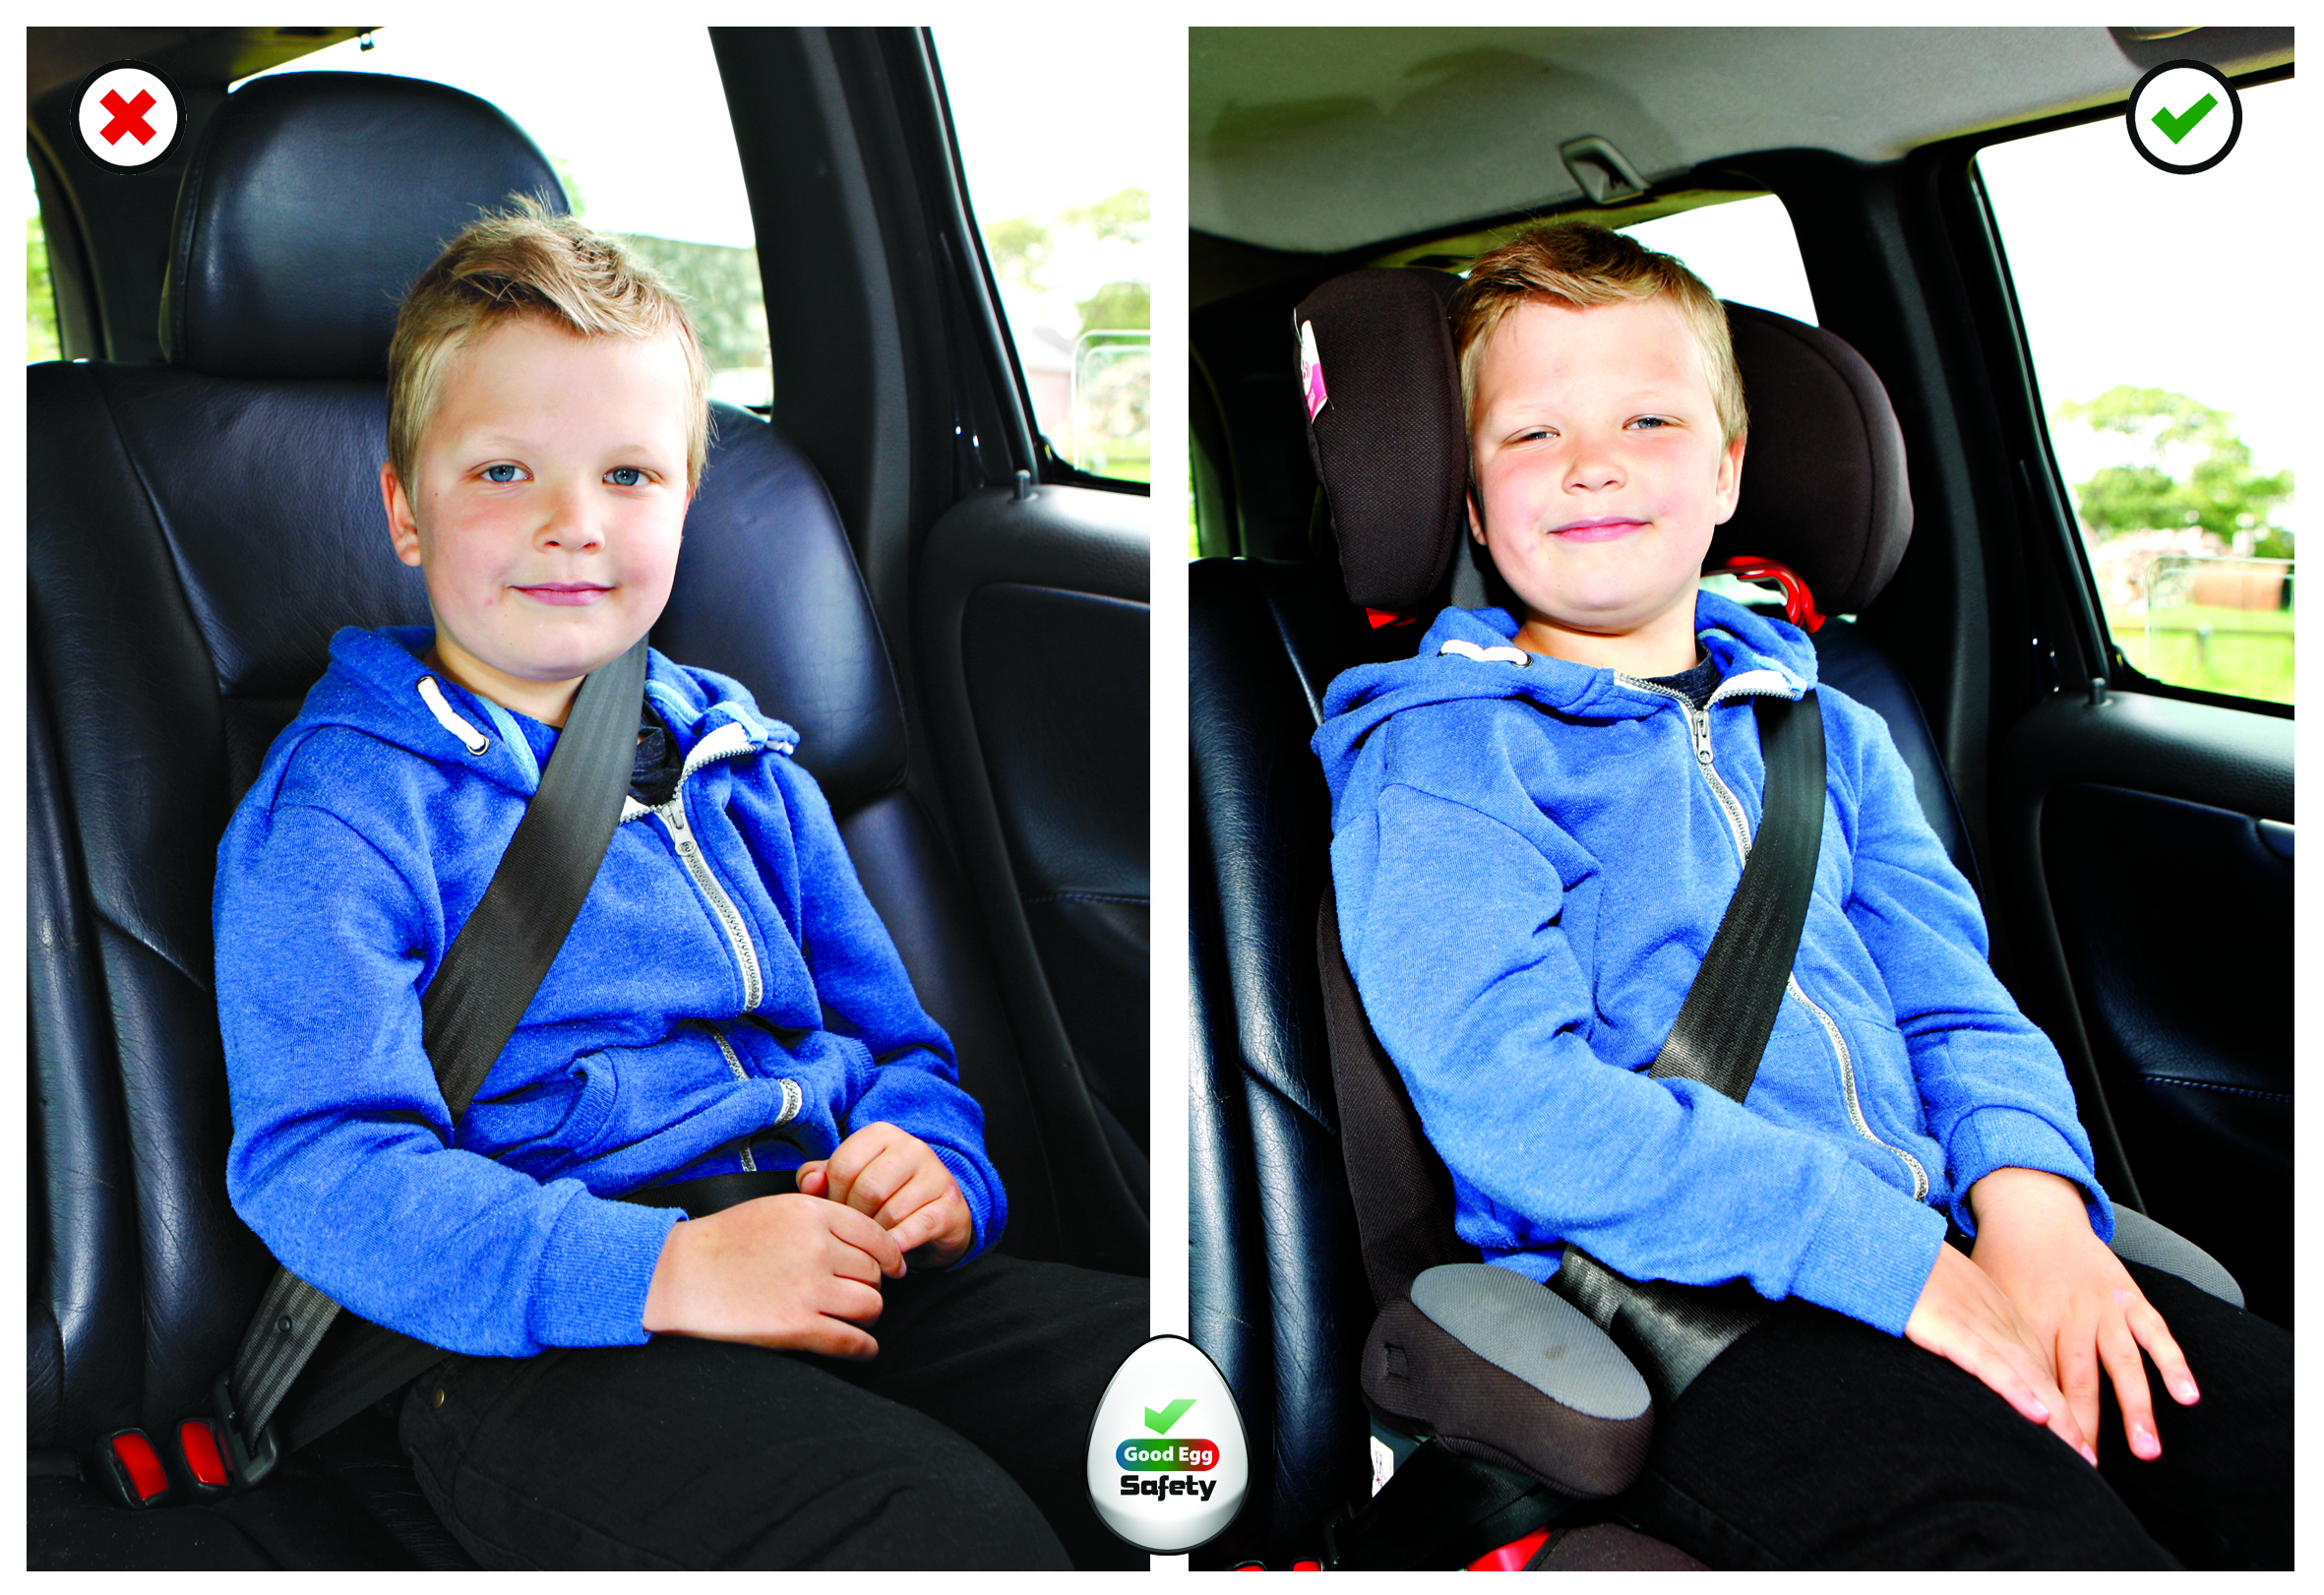 Good Egg Child Car Seat Safety Safety Advice For